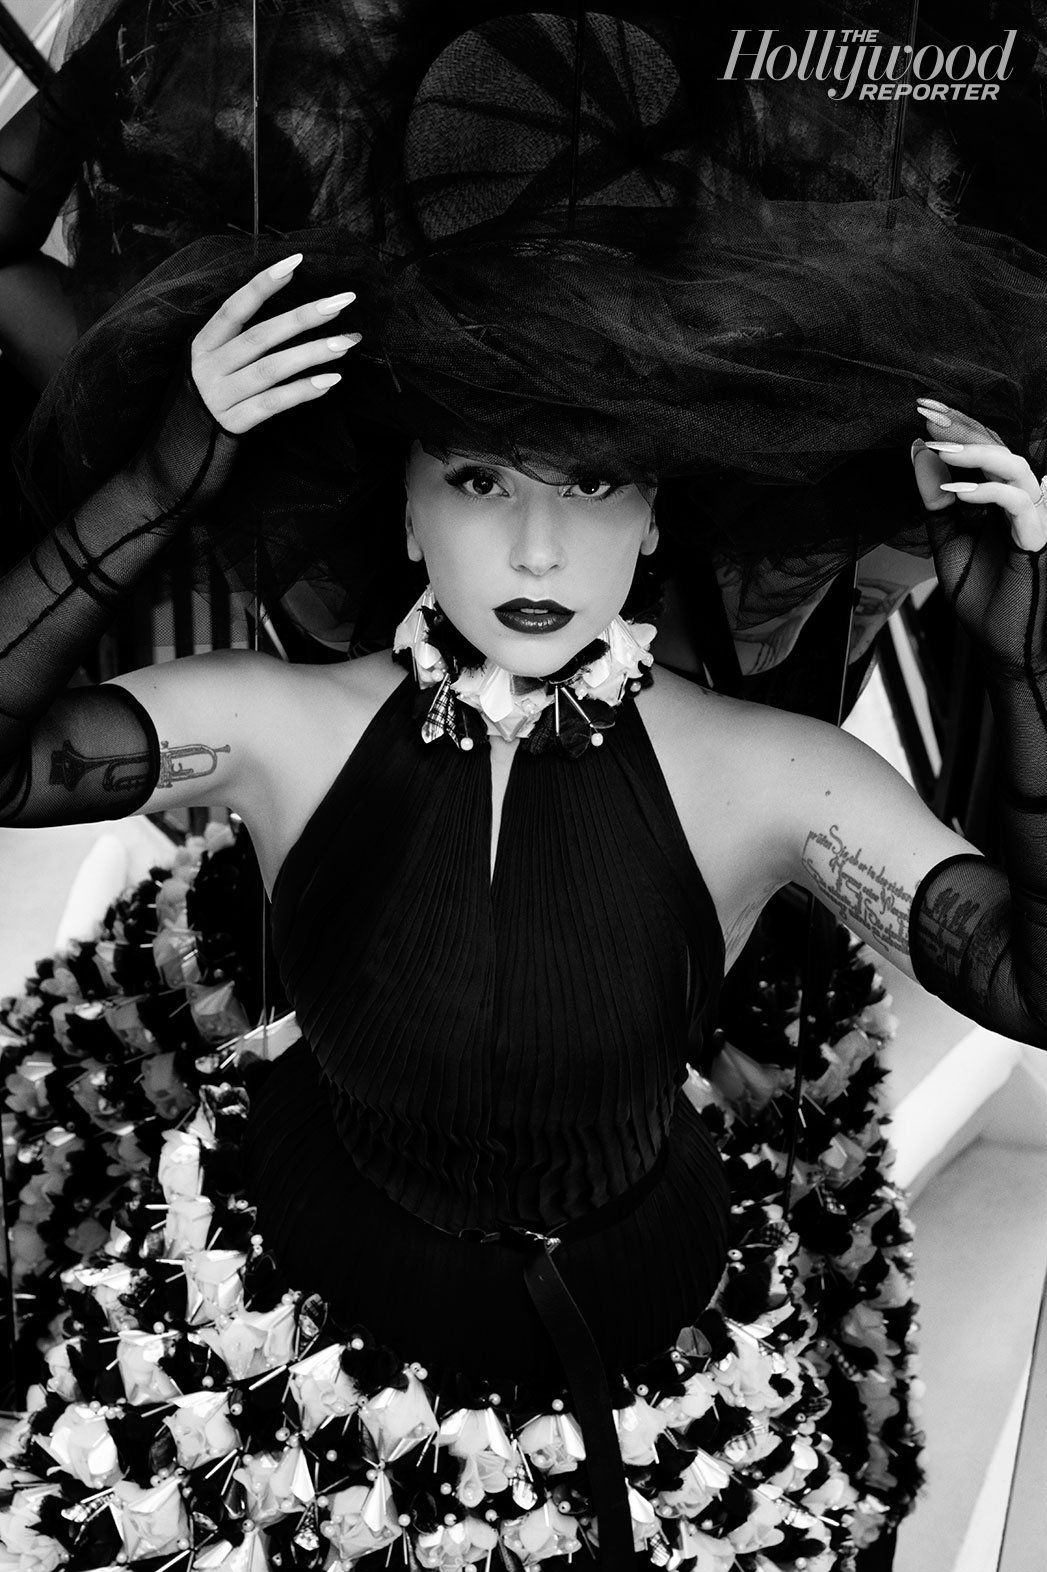 Hollywood S Most Powerful Stylists Lady Gaga Channing Tatum Lily James Pose With Their Partners In Fashion Photos Lady Gaga Pictures Lady Gaga Lady Gaga Images